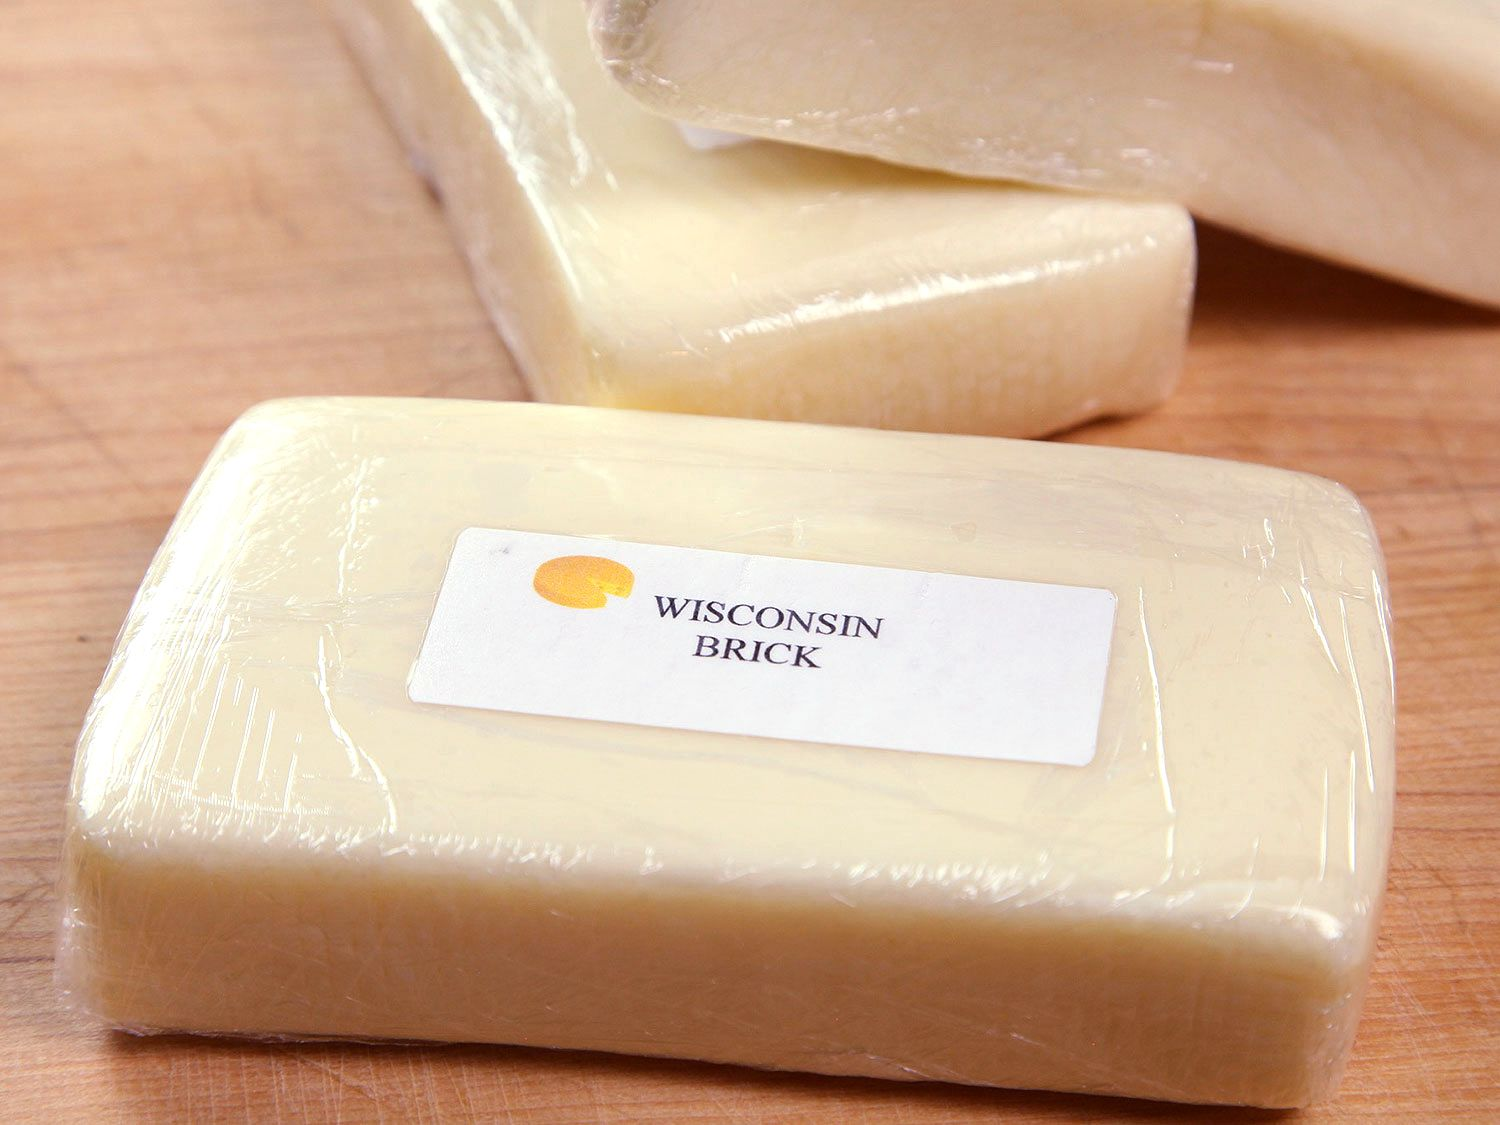 Slabs of Wisconsin Brick cheese resting on countertop